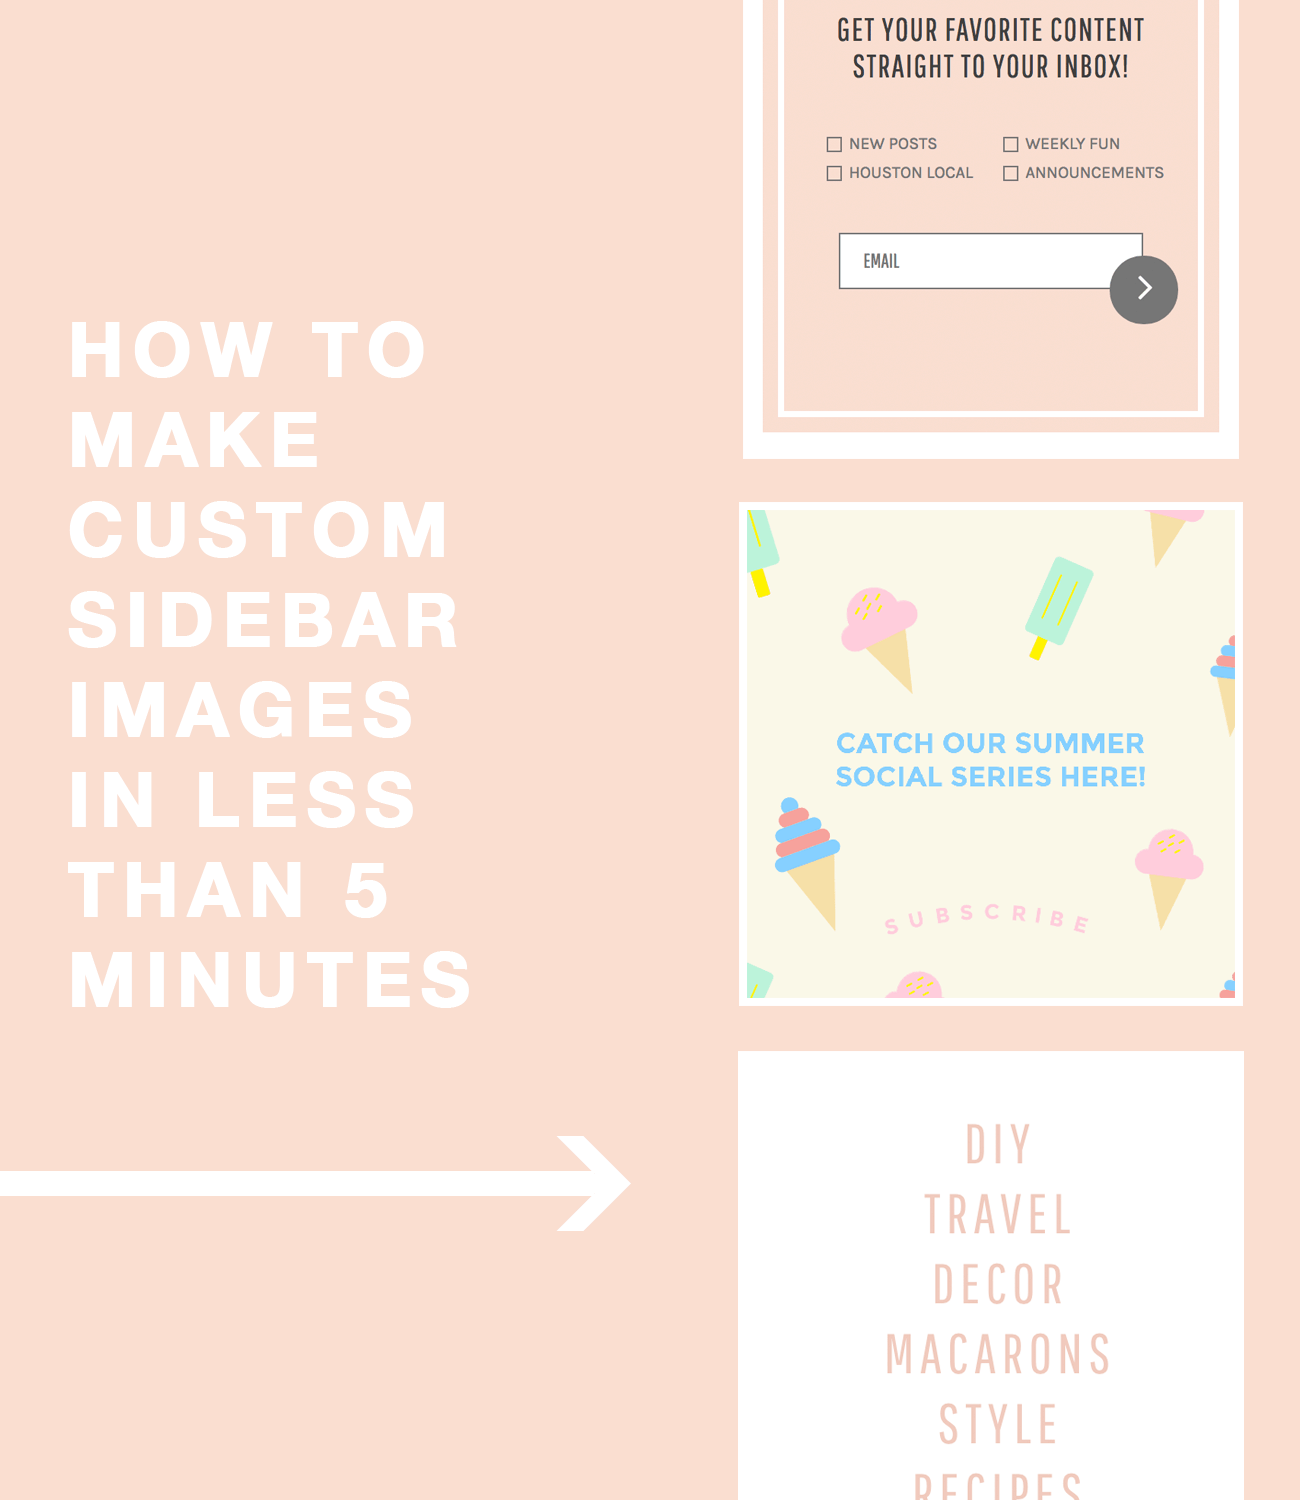 how to make a custom sidebar images in less than 5 minutes by top Houston lifestyle blogger Ashley Rose of Sugar and Cloth